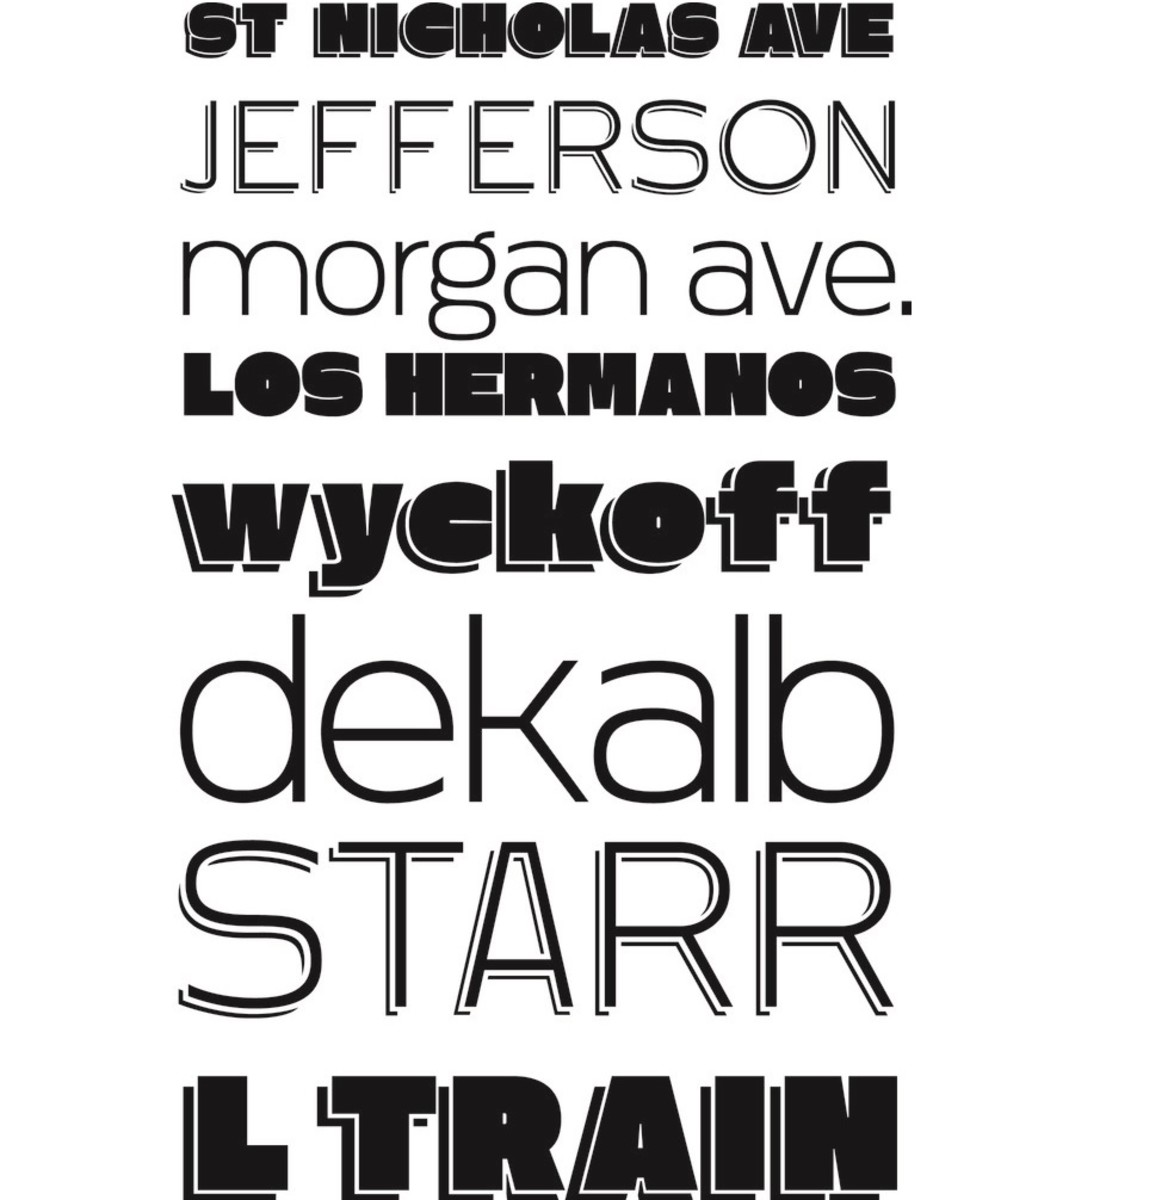 bushwick-the-typeface-a-font-inspired-by-a-neighborhood-1